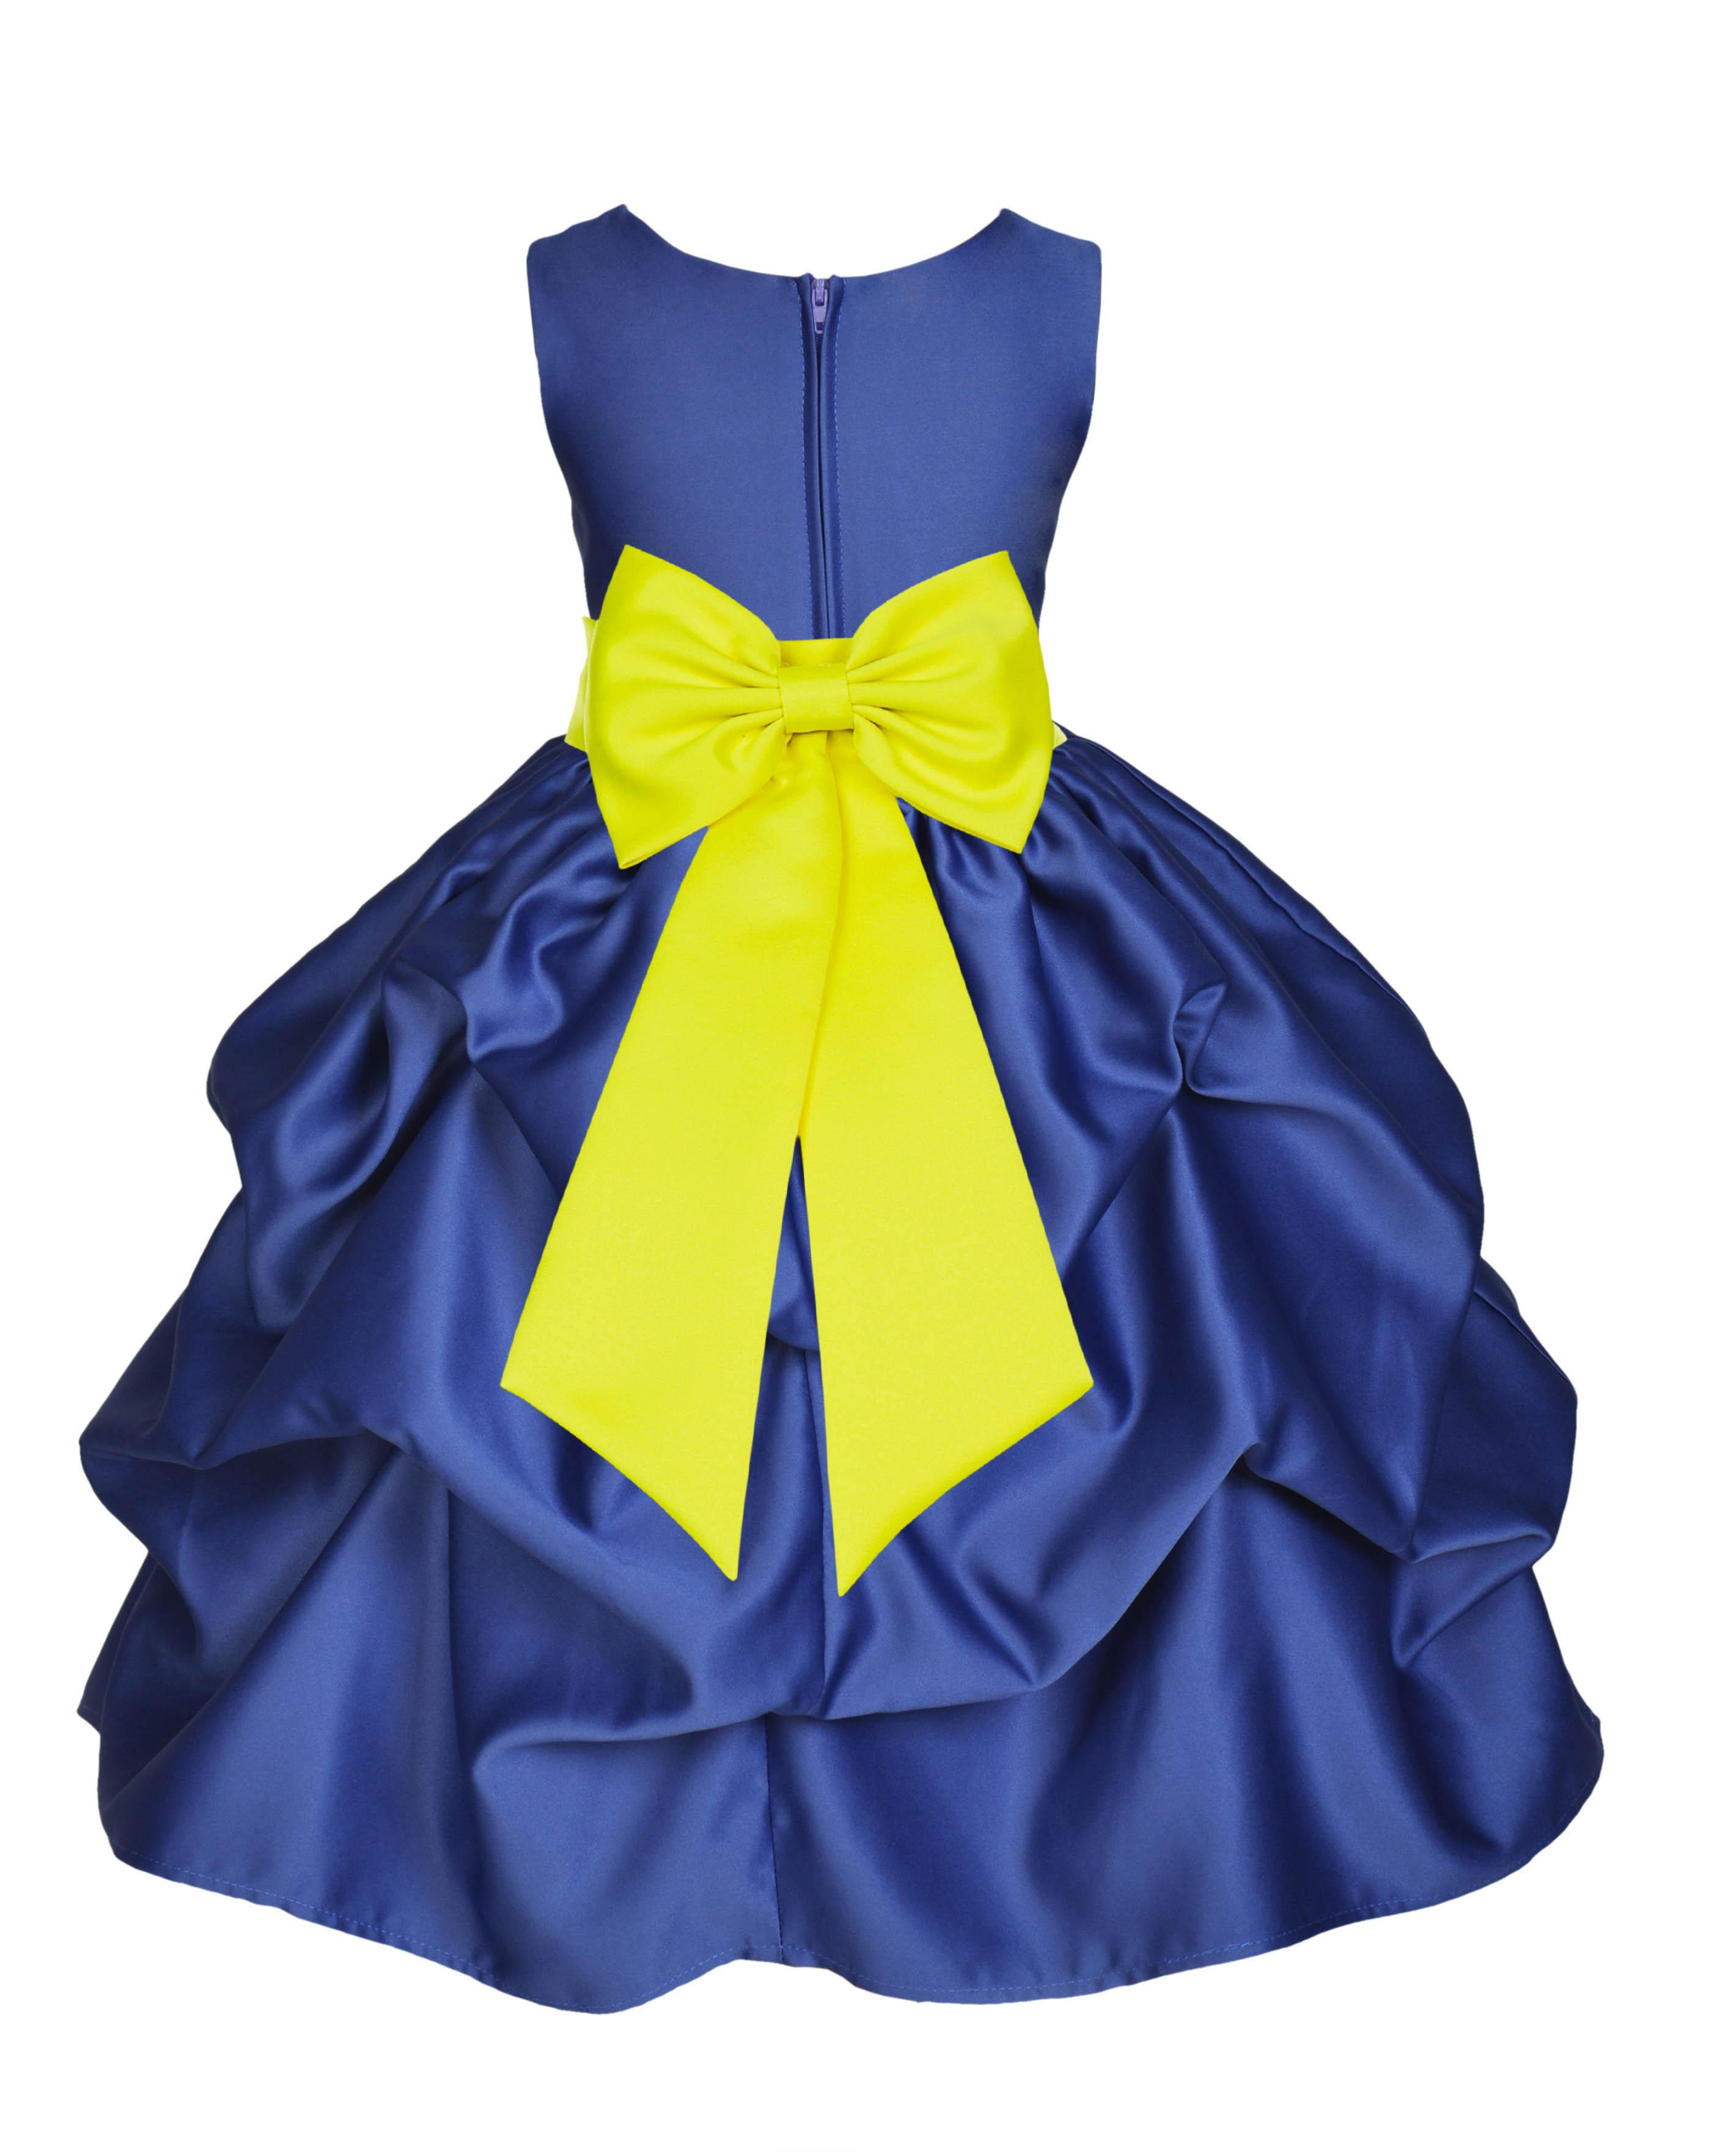 Ekidsbridal Formal Bubble Satin Pick-up Navy Blue Flower Girl Dress Bridesmaid Wedding Pageant Toddler Recital Holiday Communion Birthday Baptism Recpetion Graduation Ceremony Special Occasions 208T